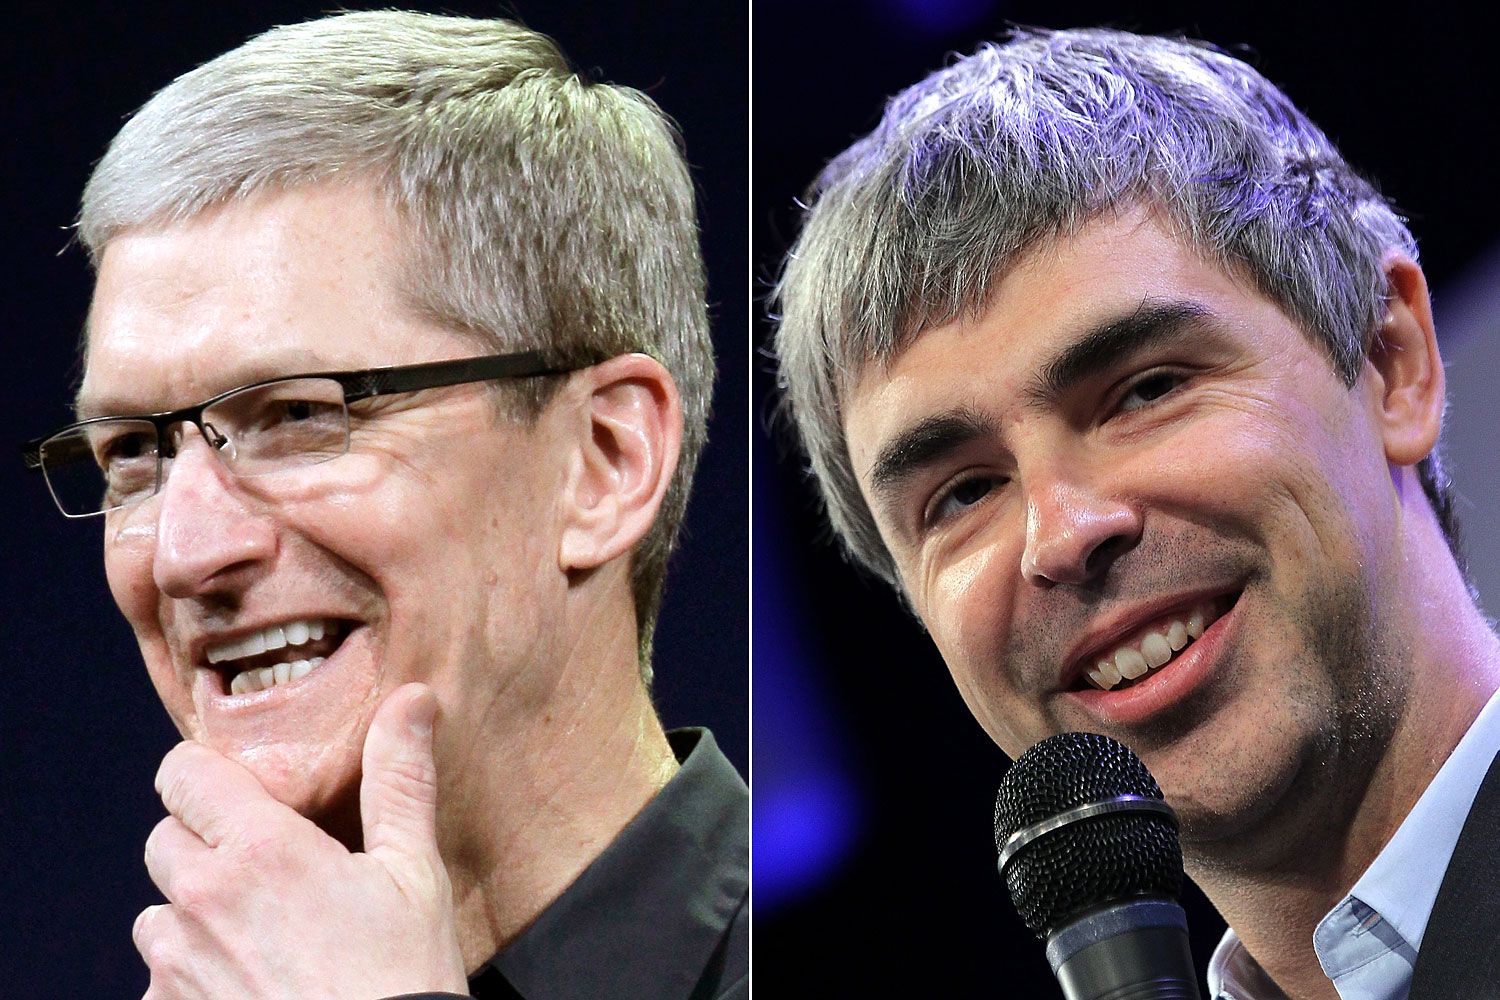 Apple CEO Tim Cook and Google CEO Larry Page.